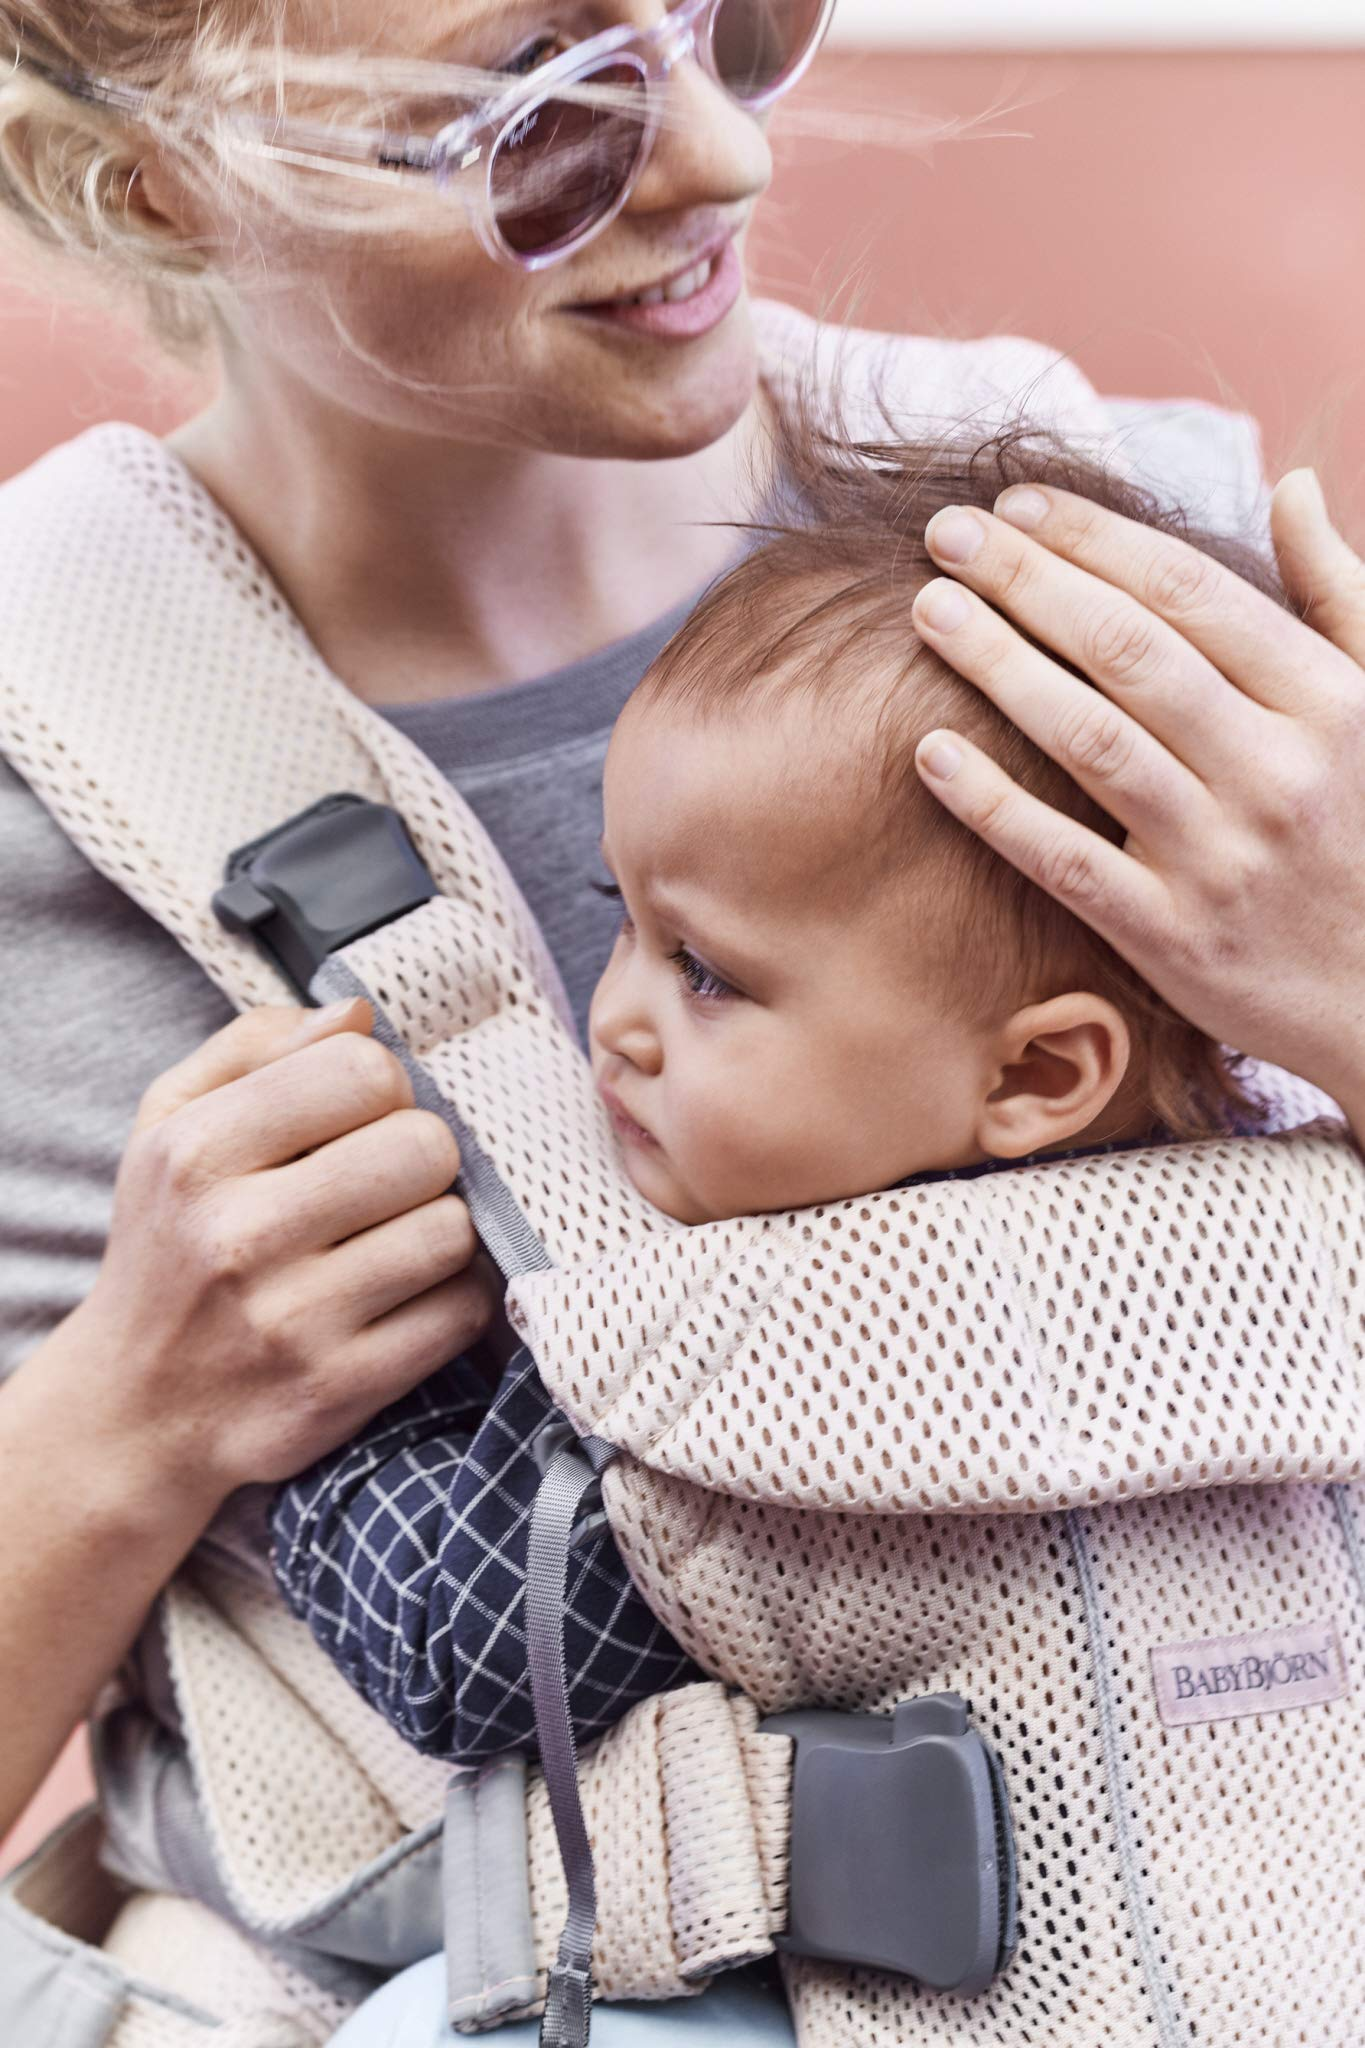 BABYBJÖRN Baby Carrier One, Cotton Mix, Black, 2018 Edition Baby Bjorn The latest version with soft and breathable mesh that dries quickly Ergonomic baby carrier with excellent support 4 carrying positions: facing in (two height positions), facing out or on your back 9